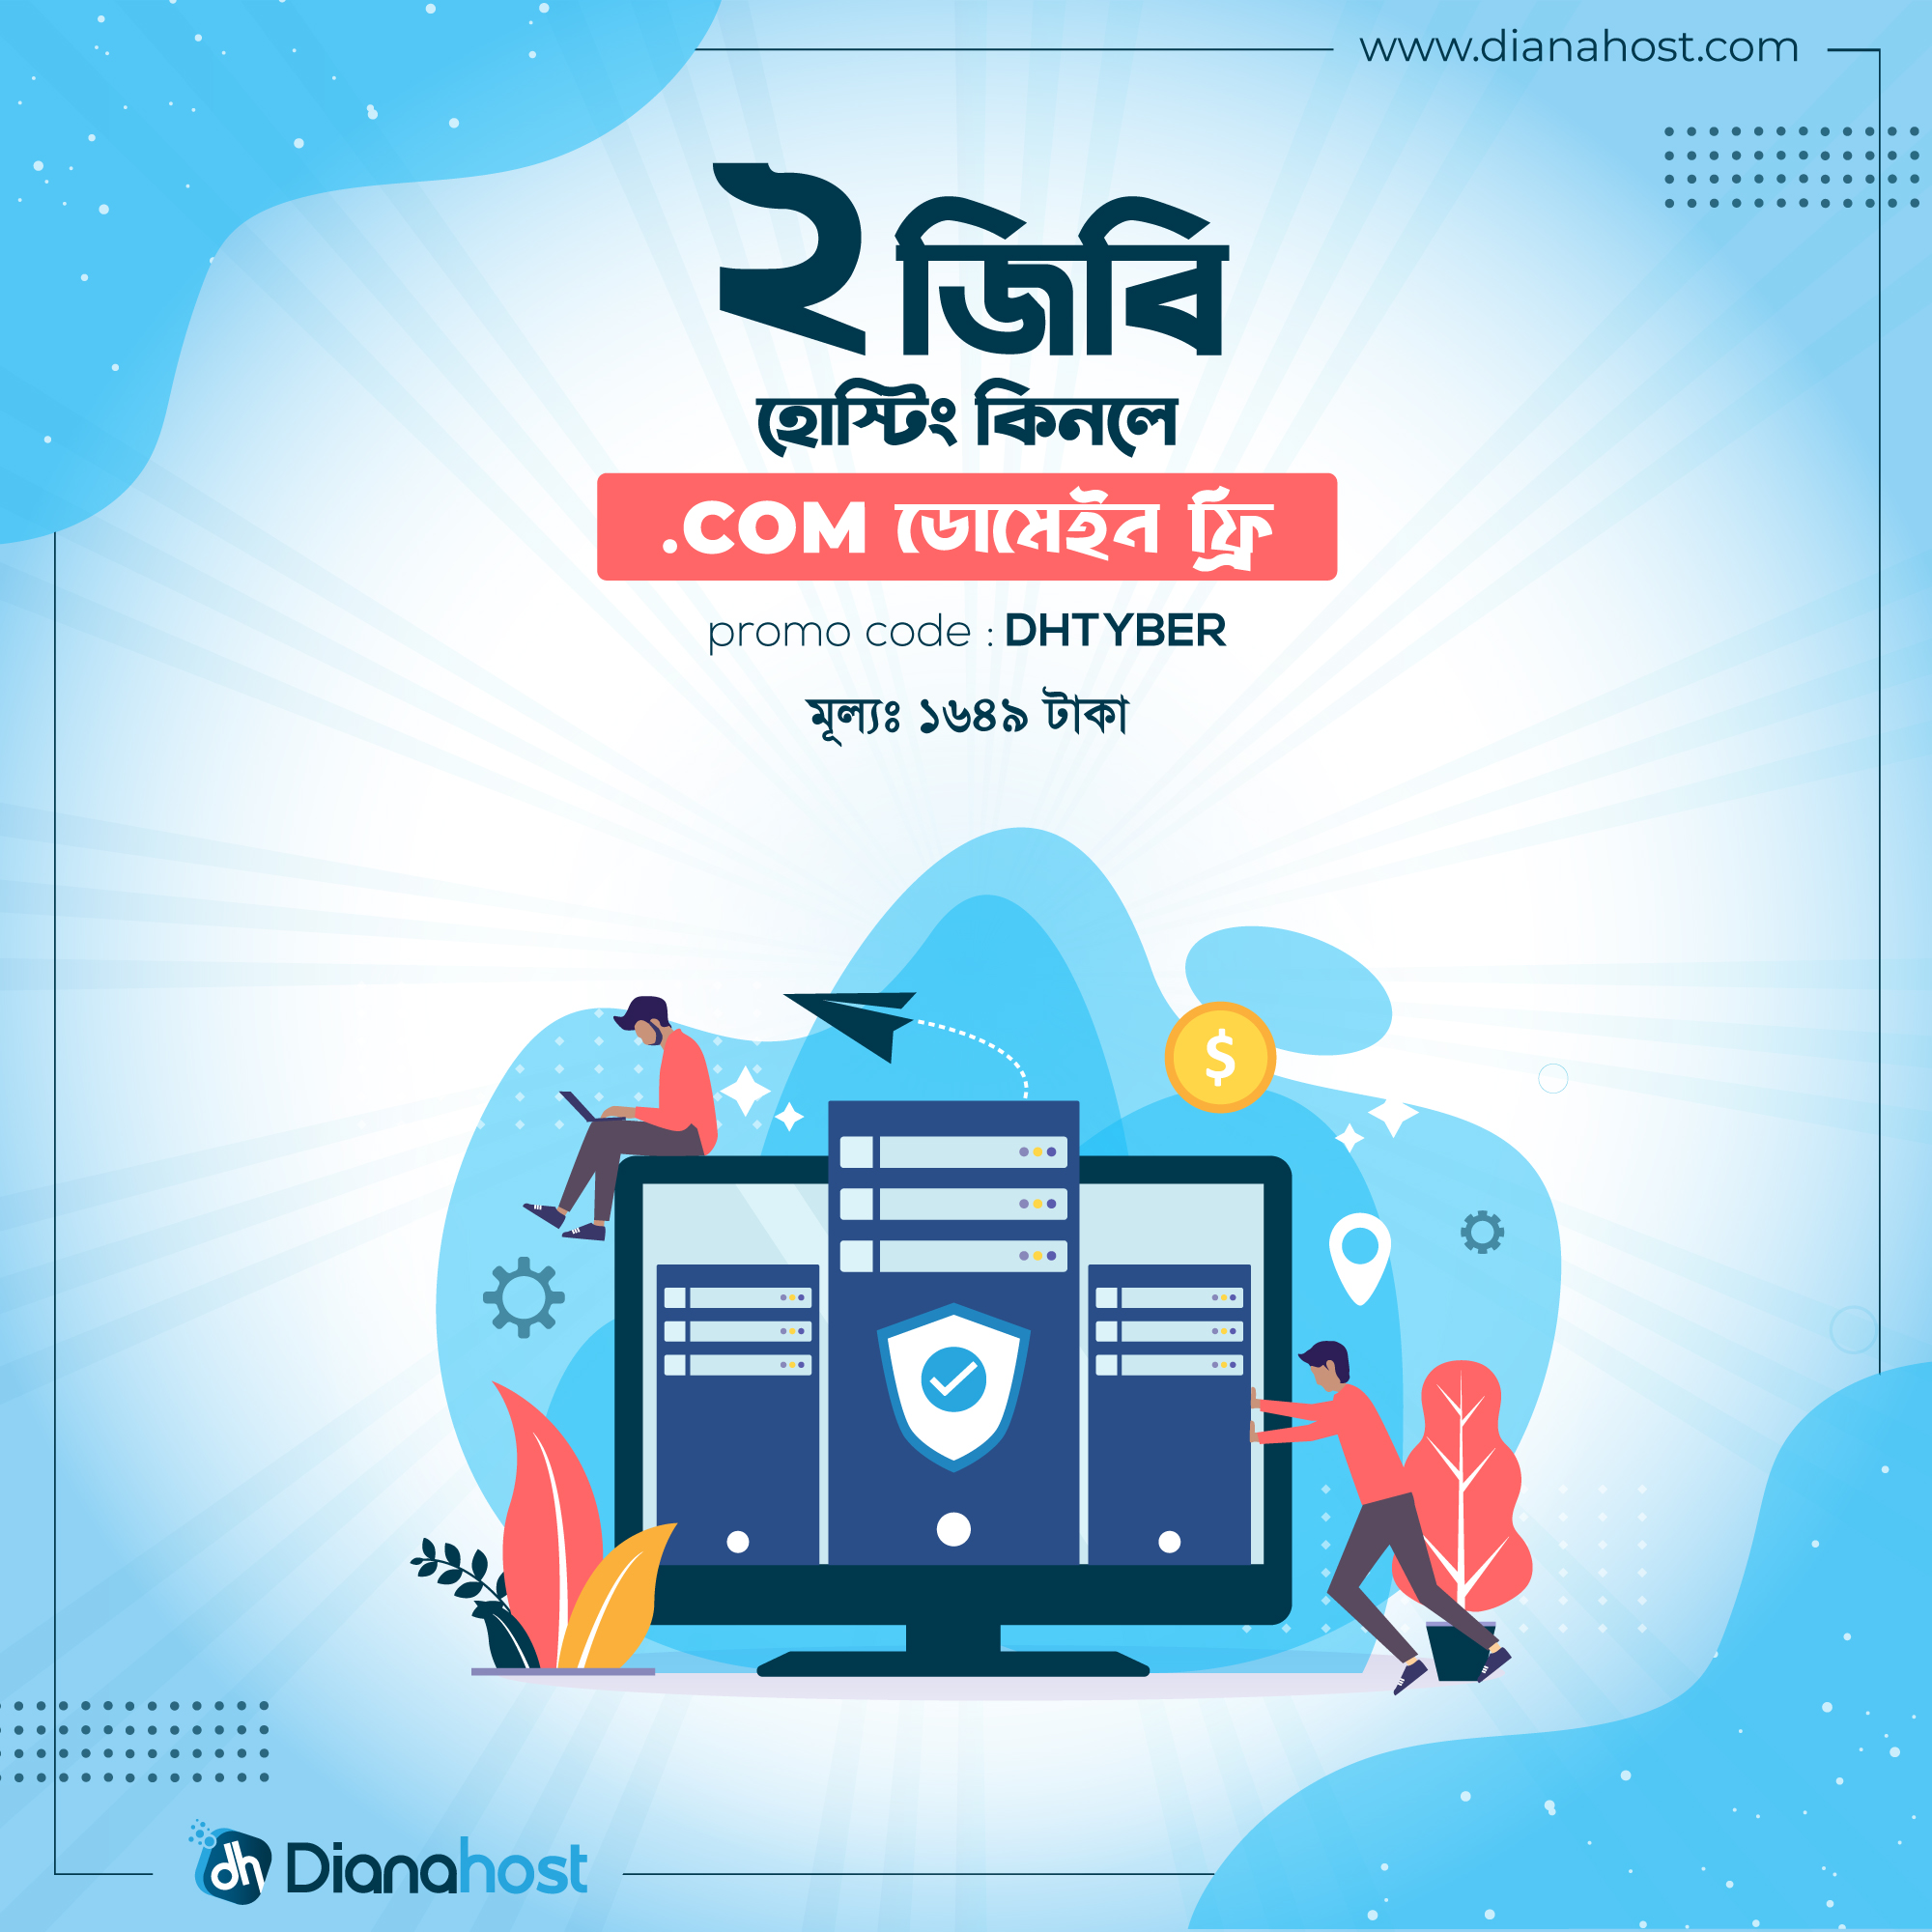 ২জিবি হোস্টিং কিনলে .Com ডোমেইন ফ্রী!, domain hosting combo offer, hosting offer, domain offer, .com domain offer bd, .com domain offer bangladesh